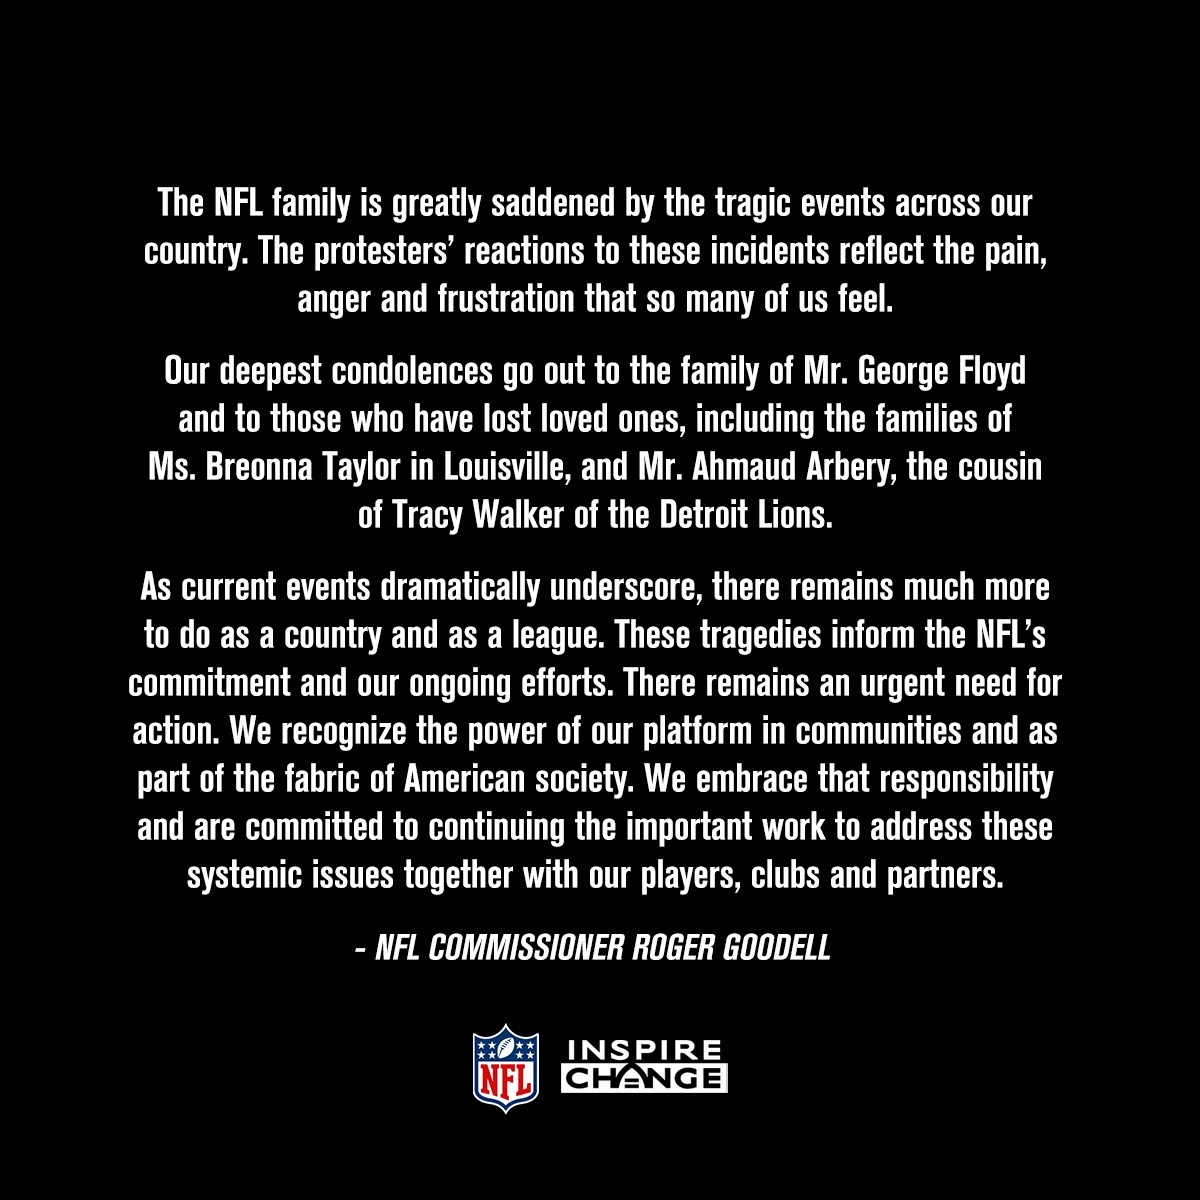 NFL statement